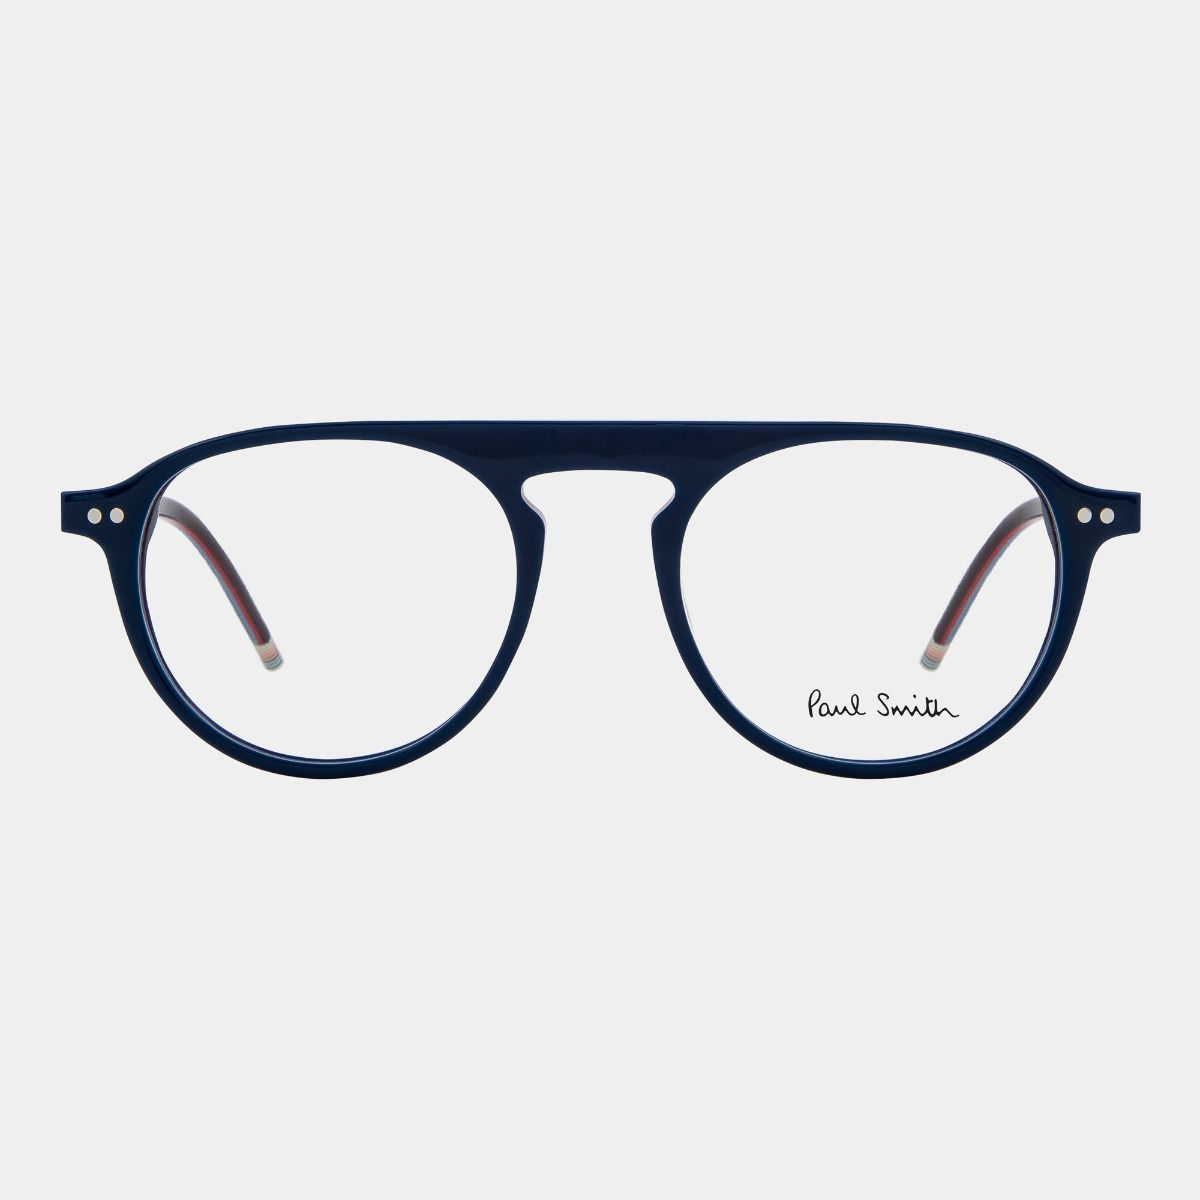 Paul Smith Charles Optical Aviator Glasses